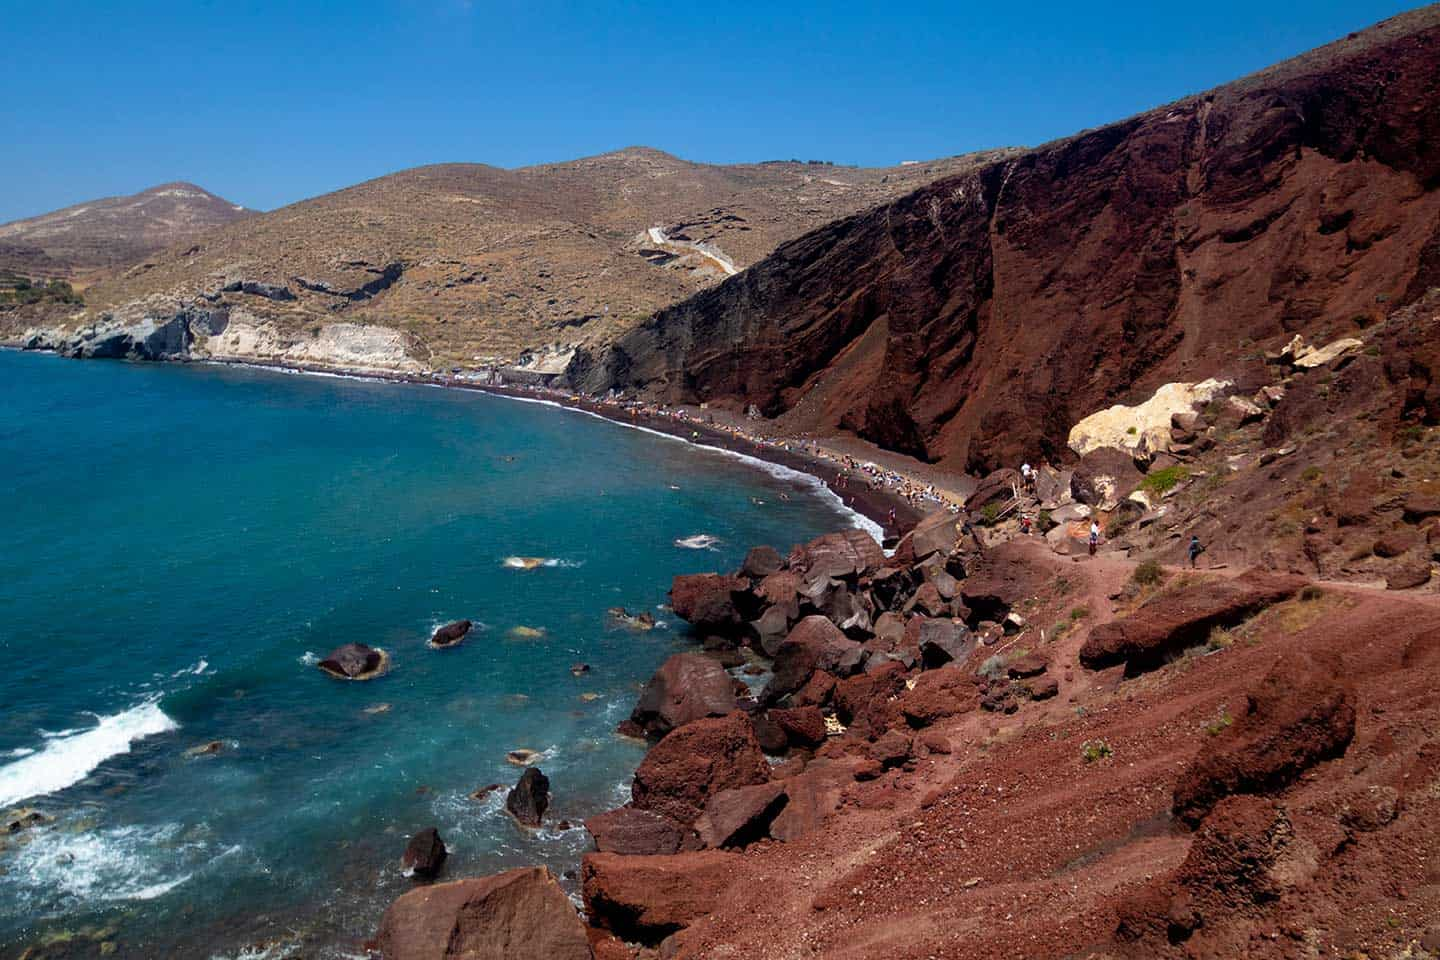 Image of Red Beach, Santorini, Greece